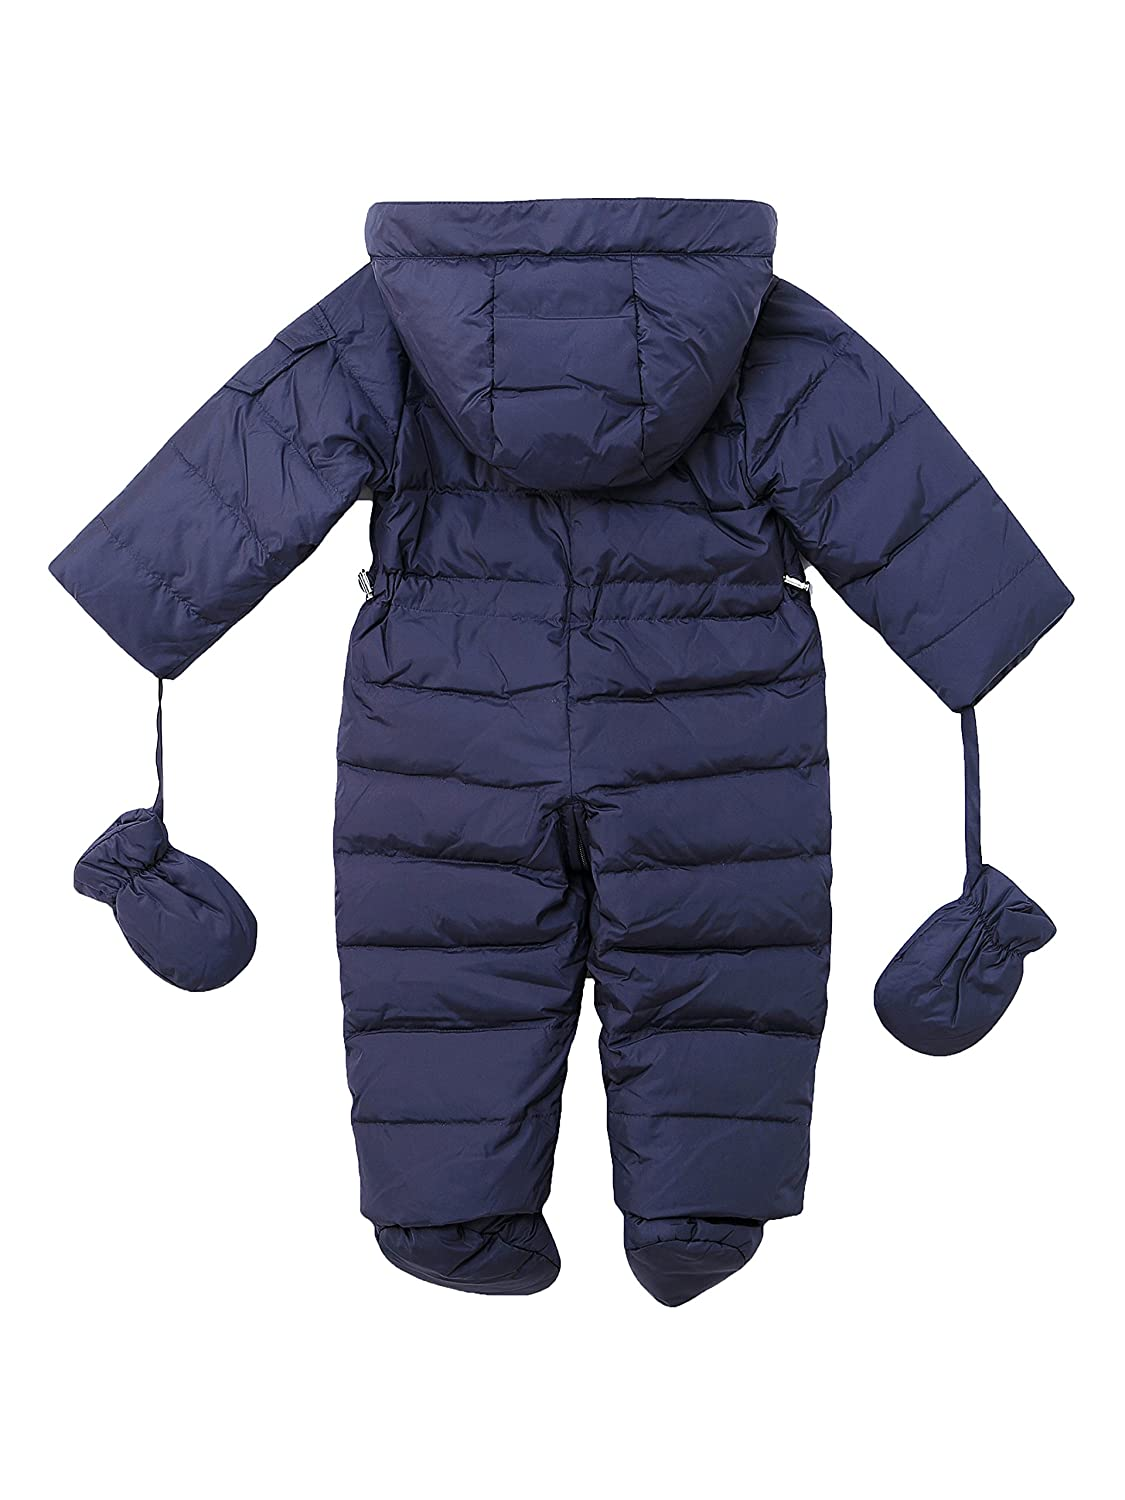 6105e2c26 Oceankids Baby Boys Girls Navy Blue Pram One-Piece Snowsuit Attached ...